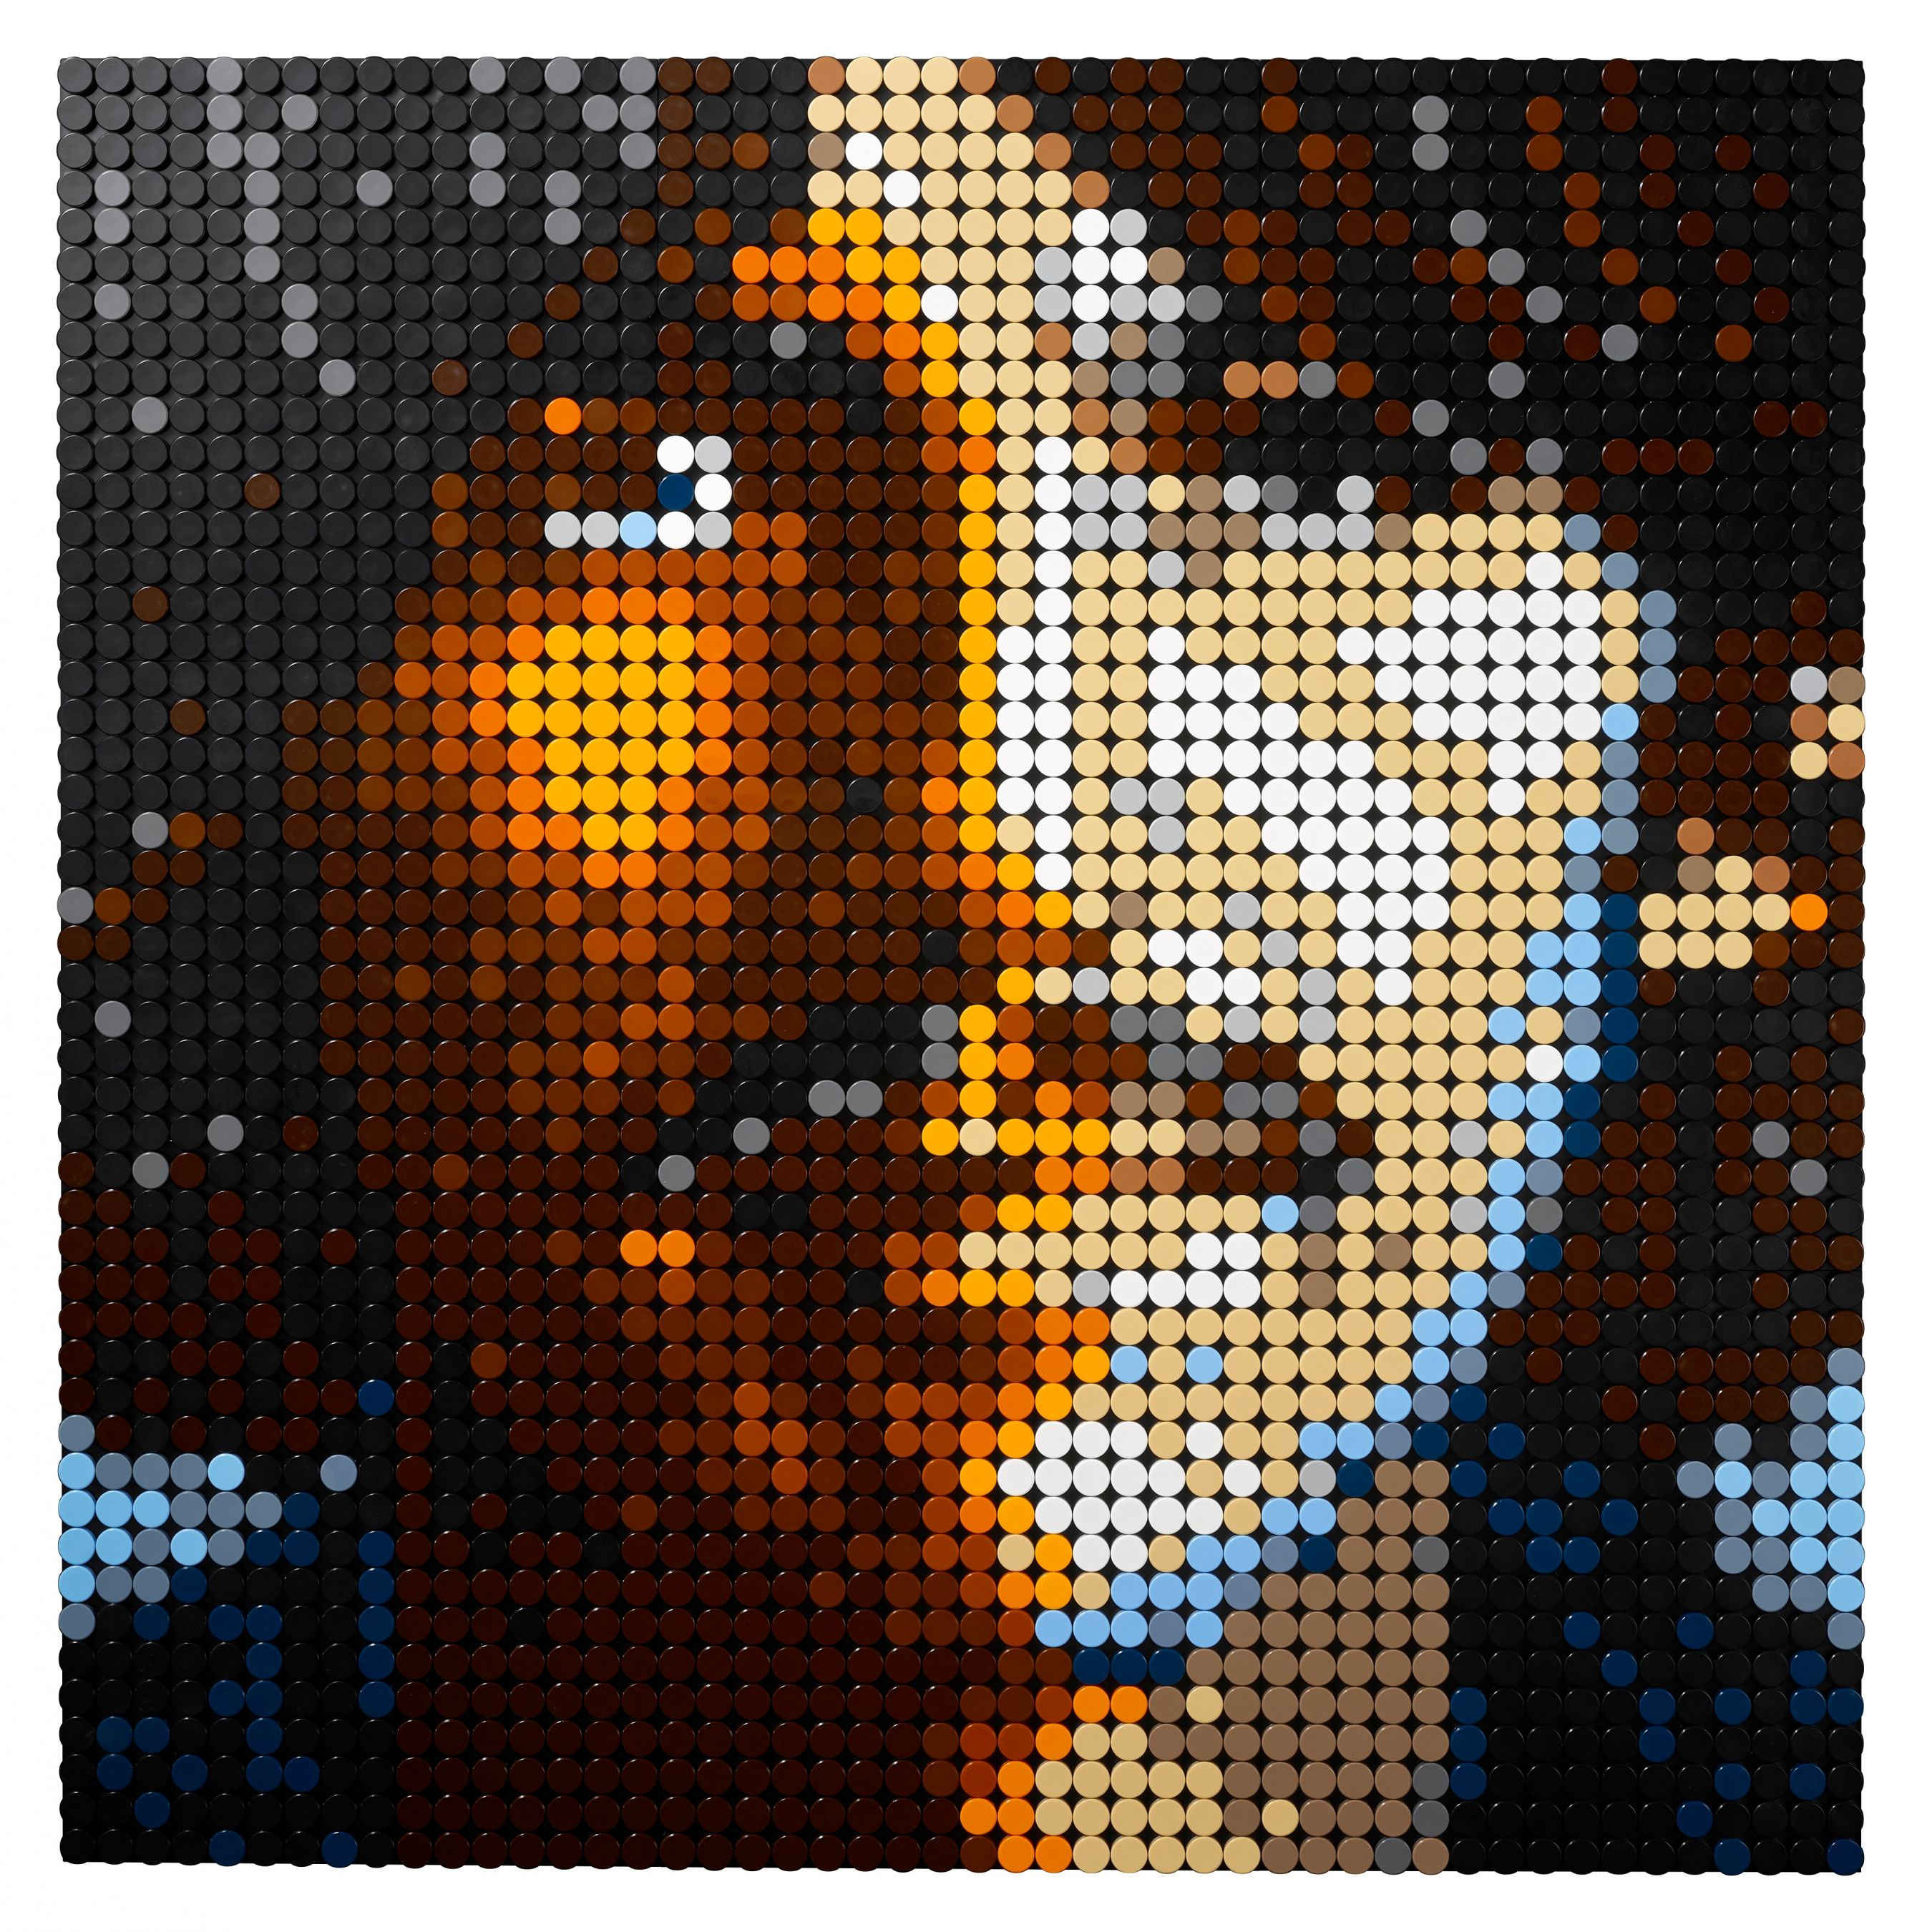 LEGO Art 31198 The Beatles LEGO_31198_alt3.jpg